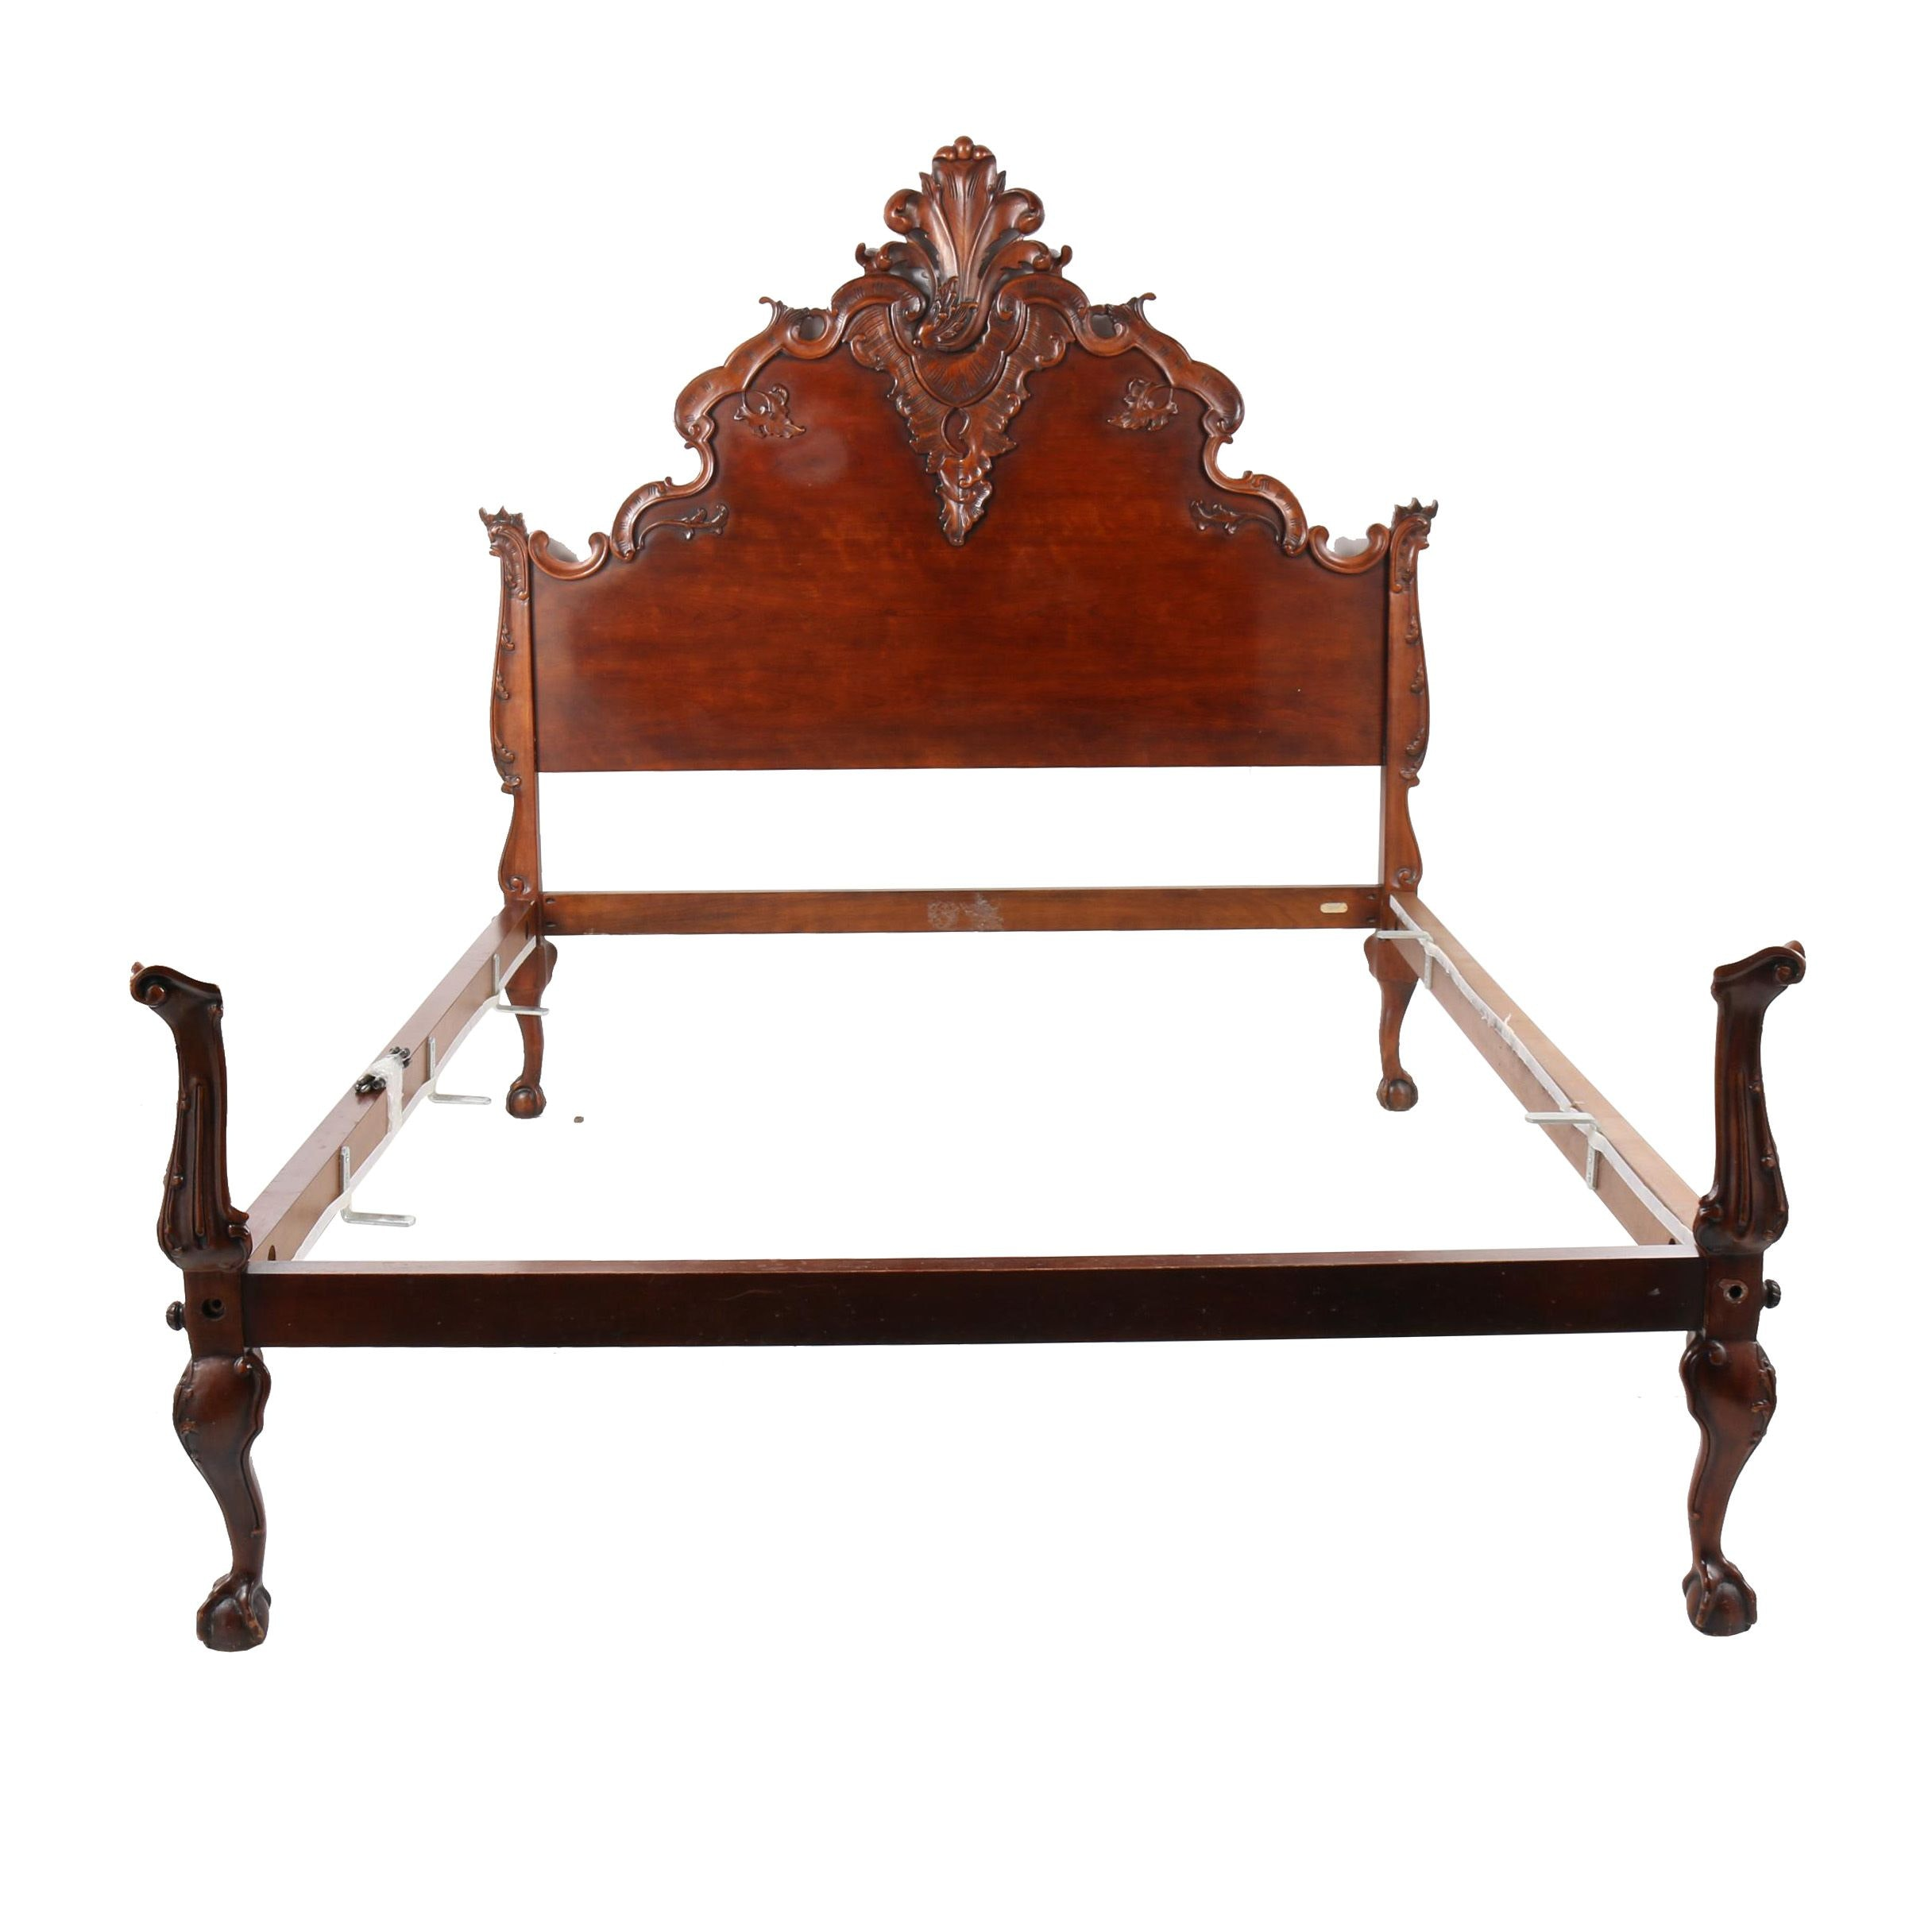 Rococo Style Carved Wood Queen Size Bed Frame by Ralph Lauren, 21st Century